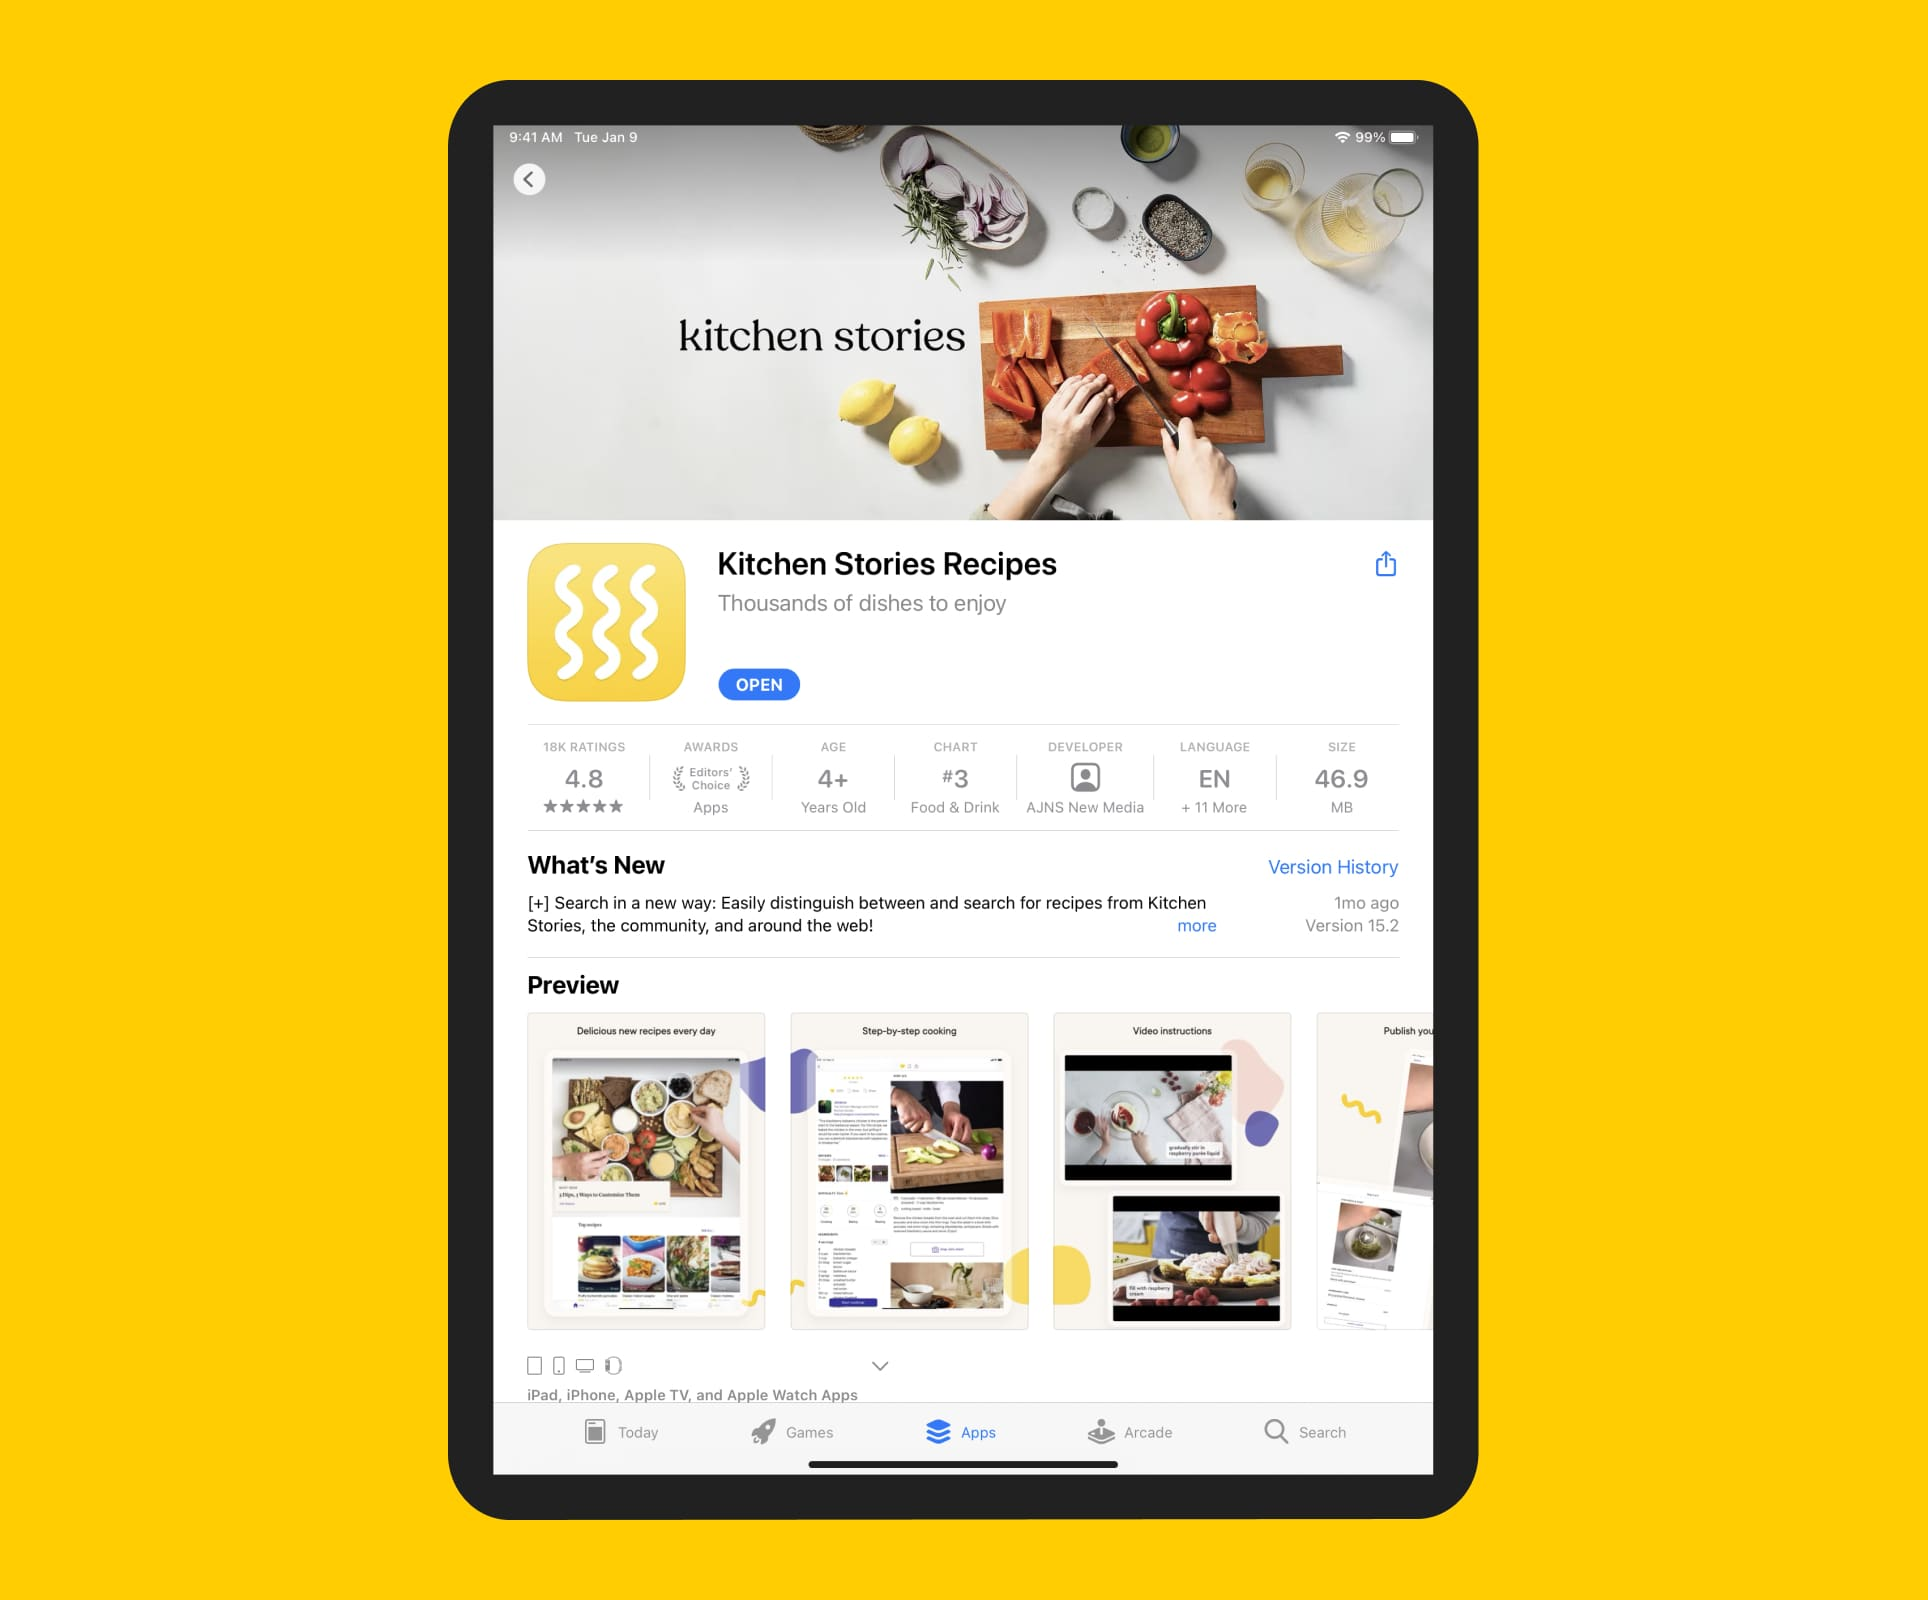 Kitchen Stories product page on the App Store